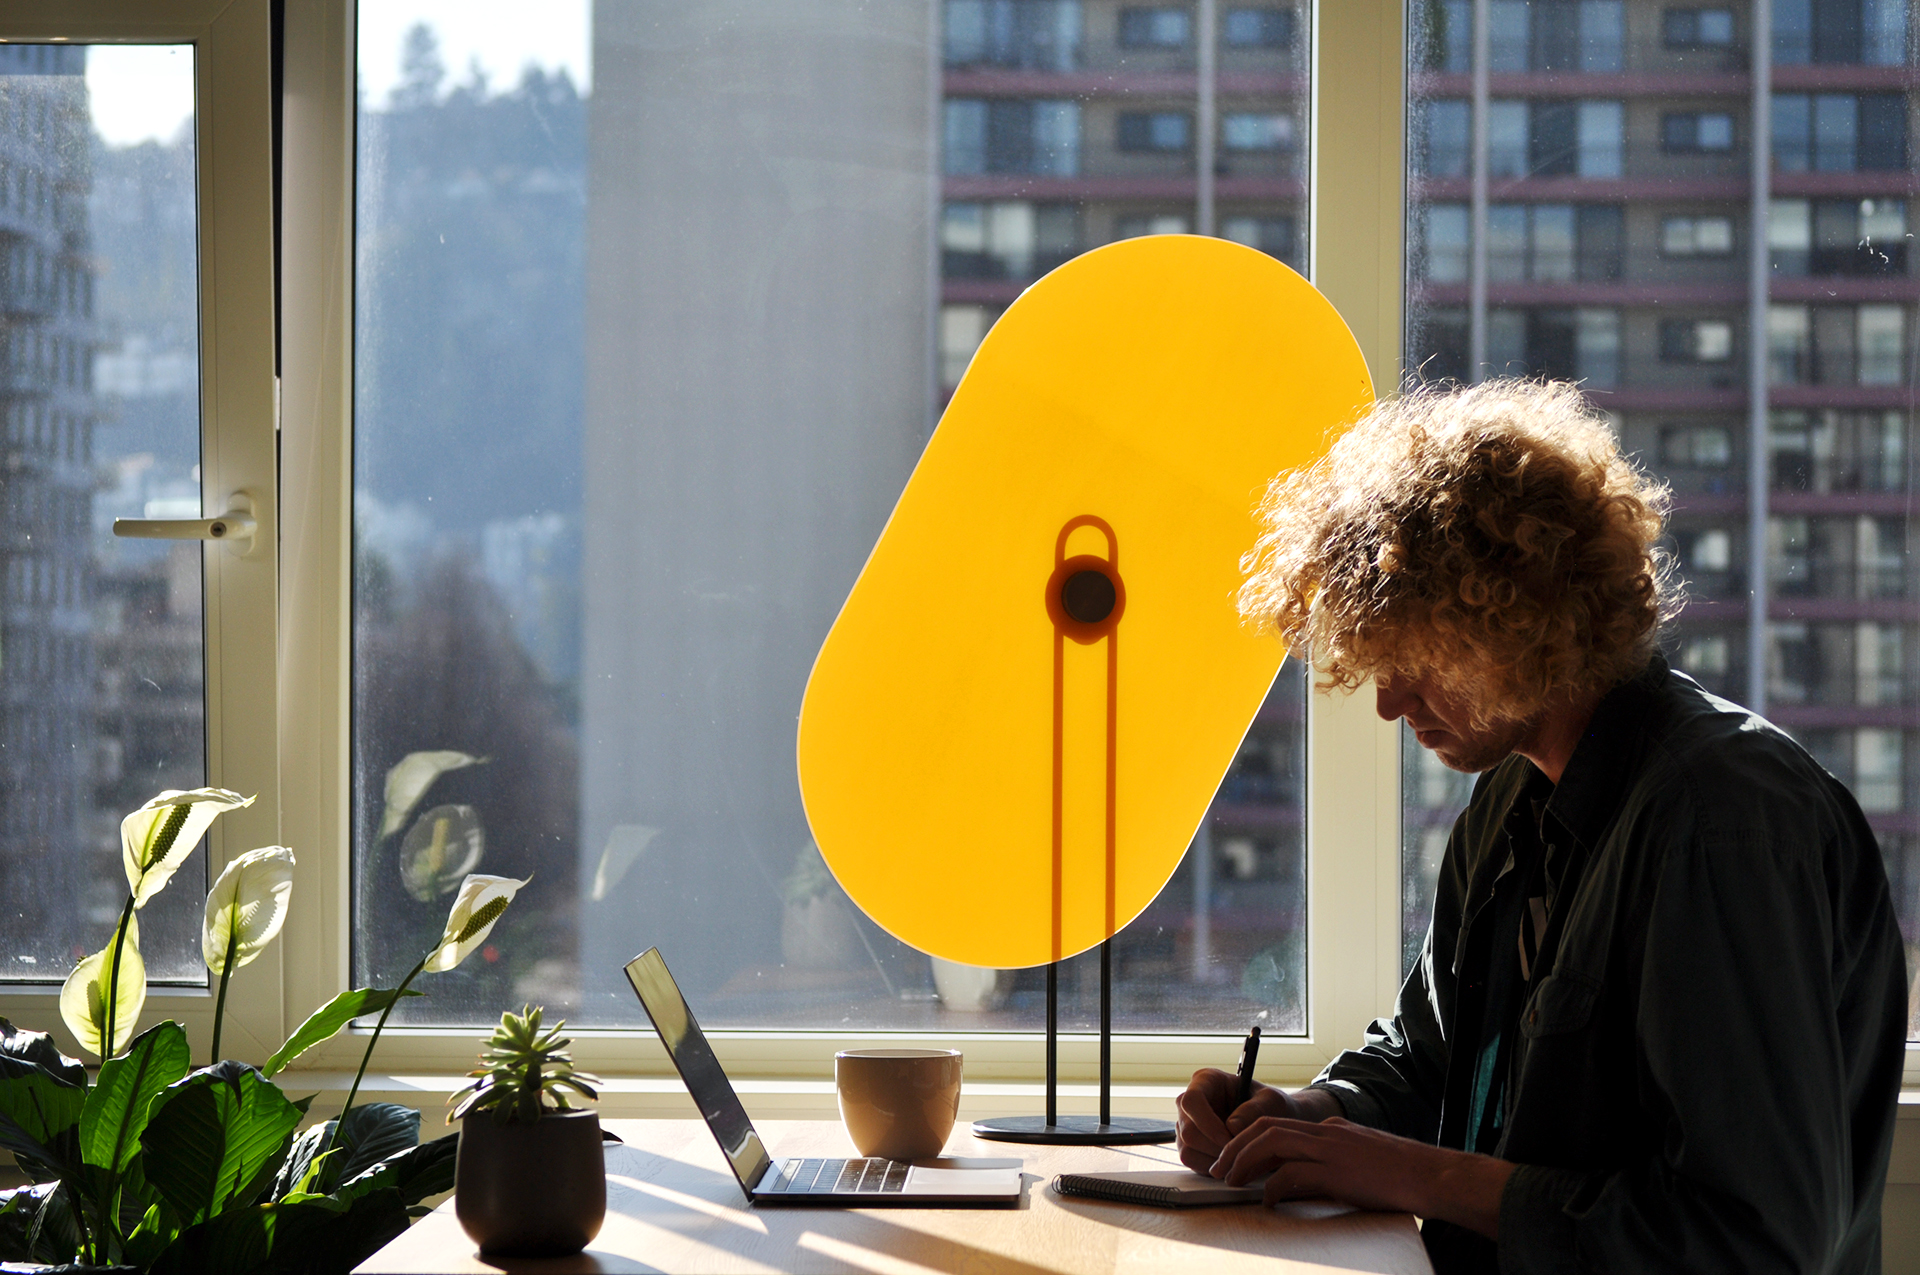 A curly-haired Peter sketching in his notepad by a window. Taskshade shading his work.